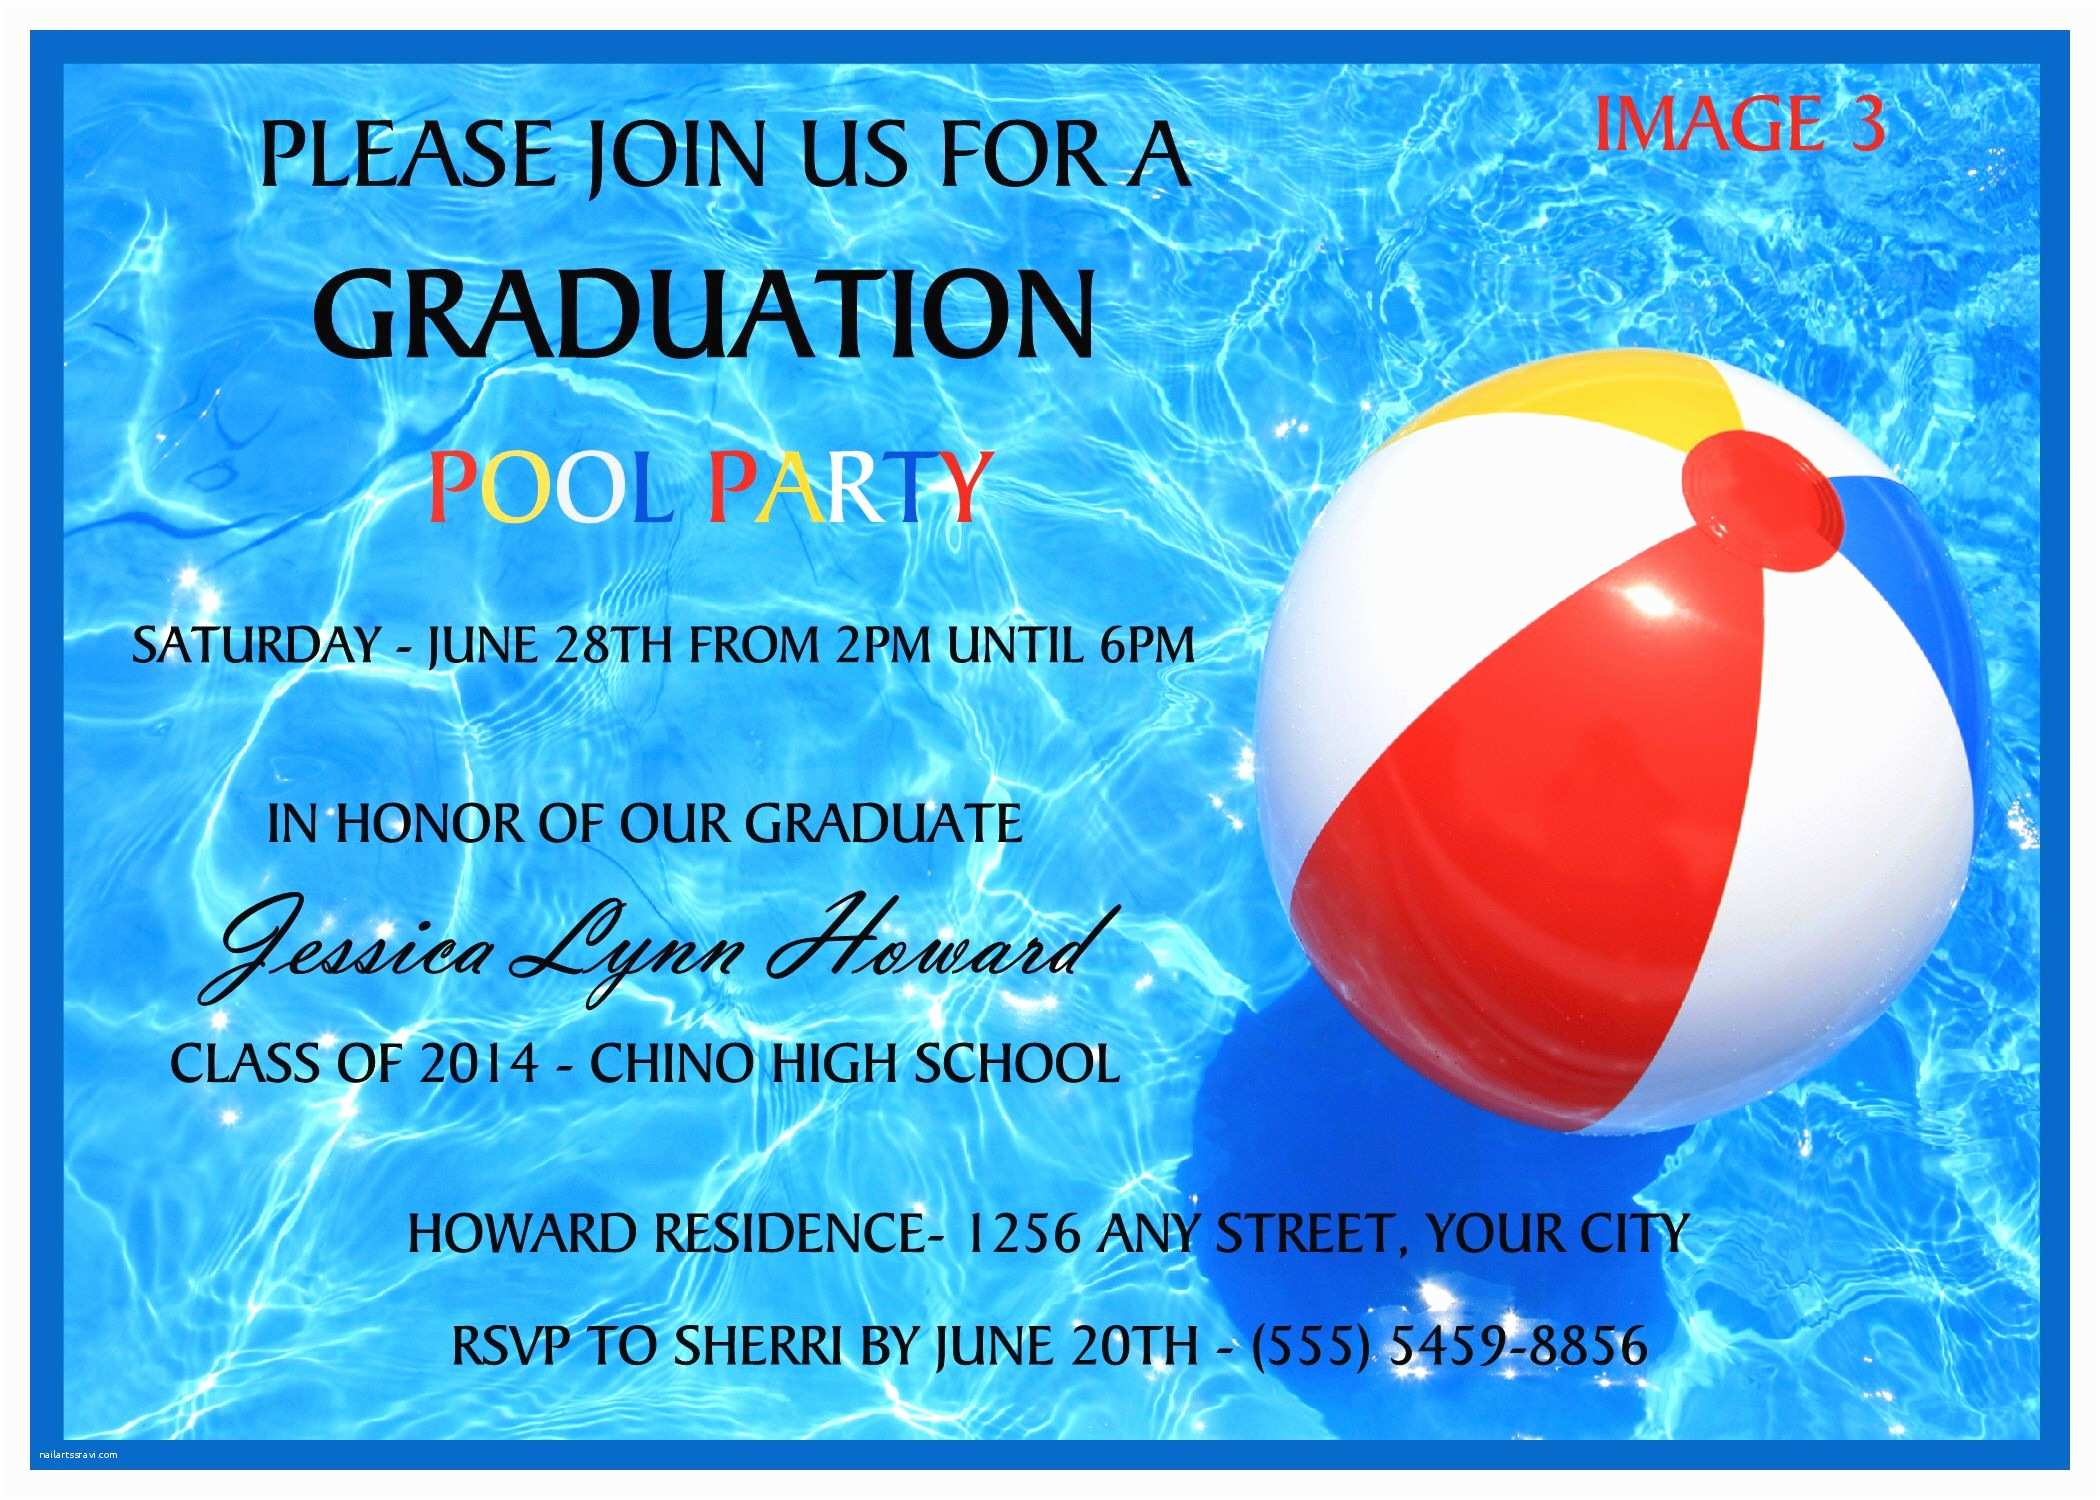 Graduation Pool Party Invitations Pool Party Graduation Invitation to order today